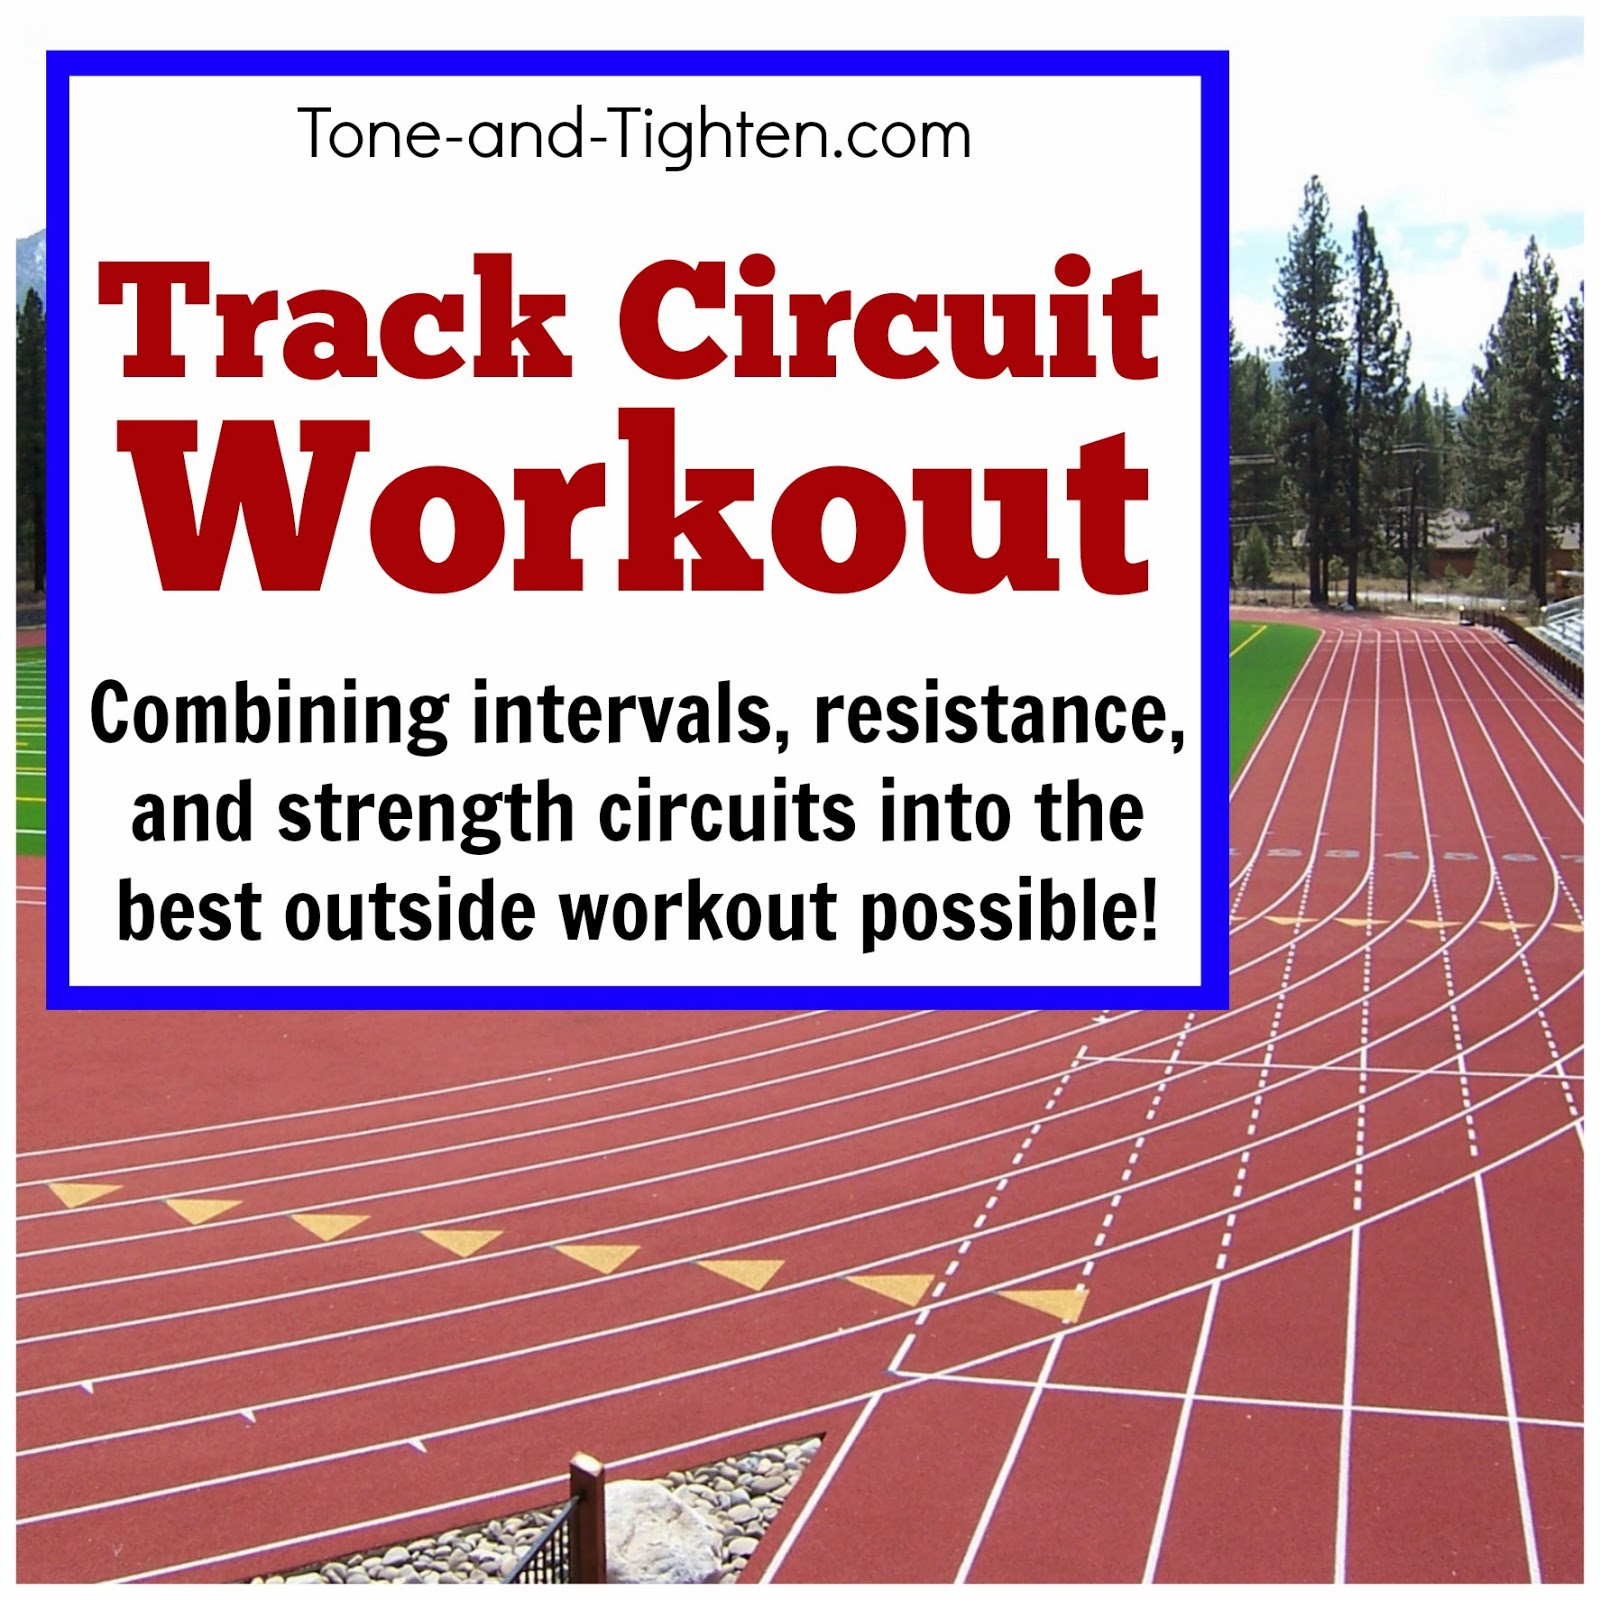 Track Circuit Workout